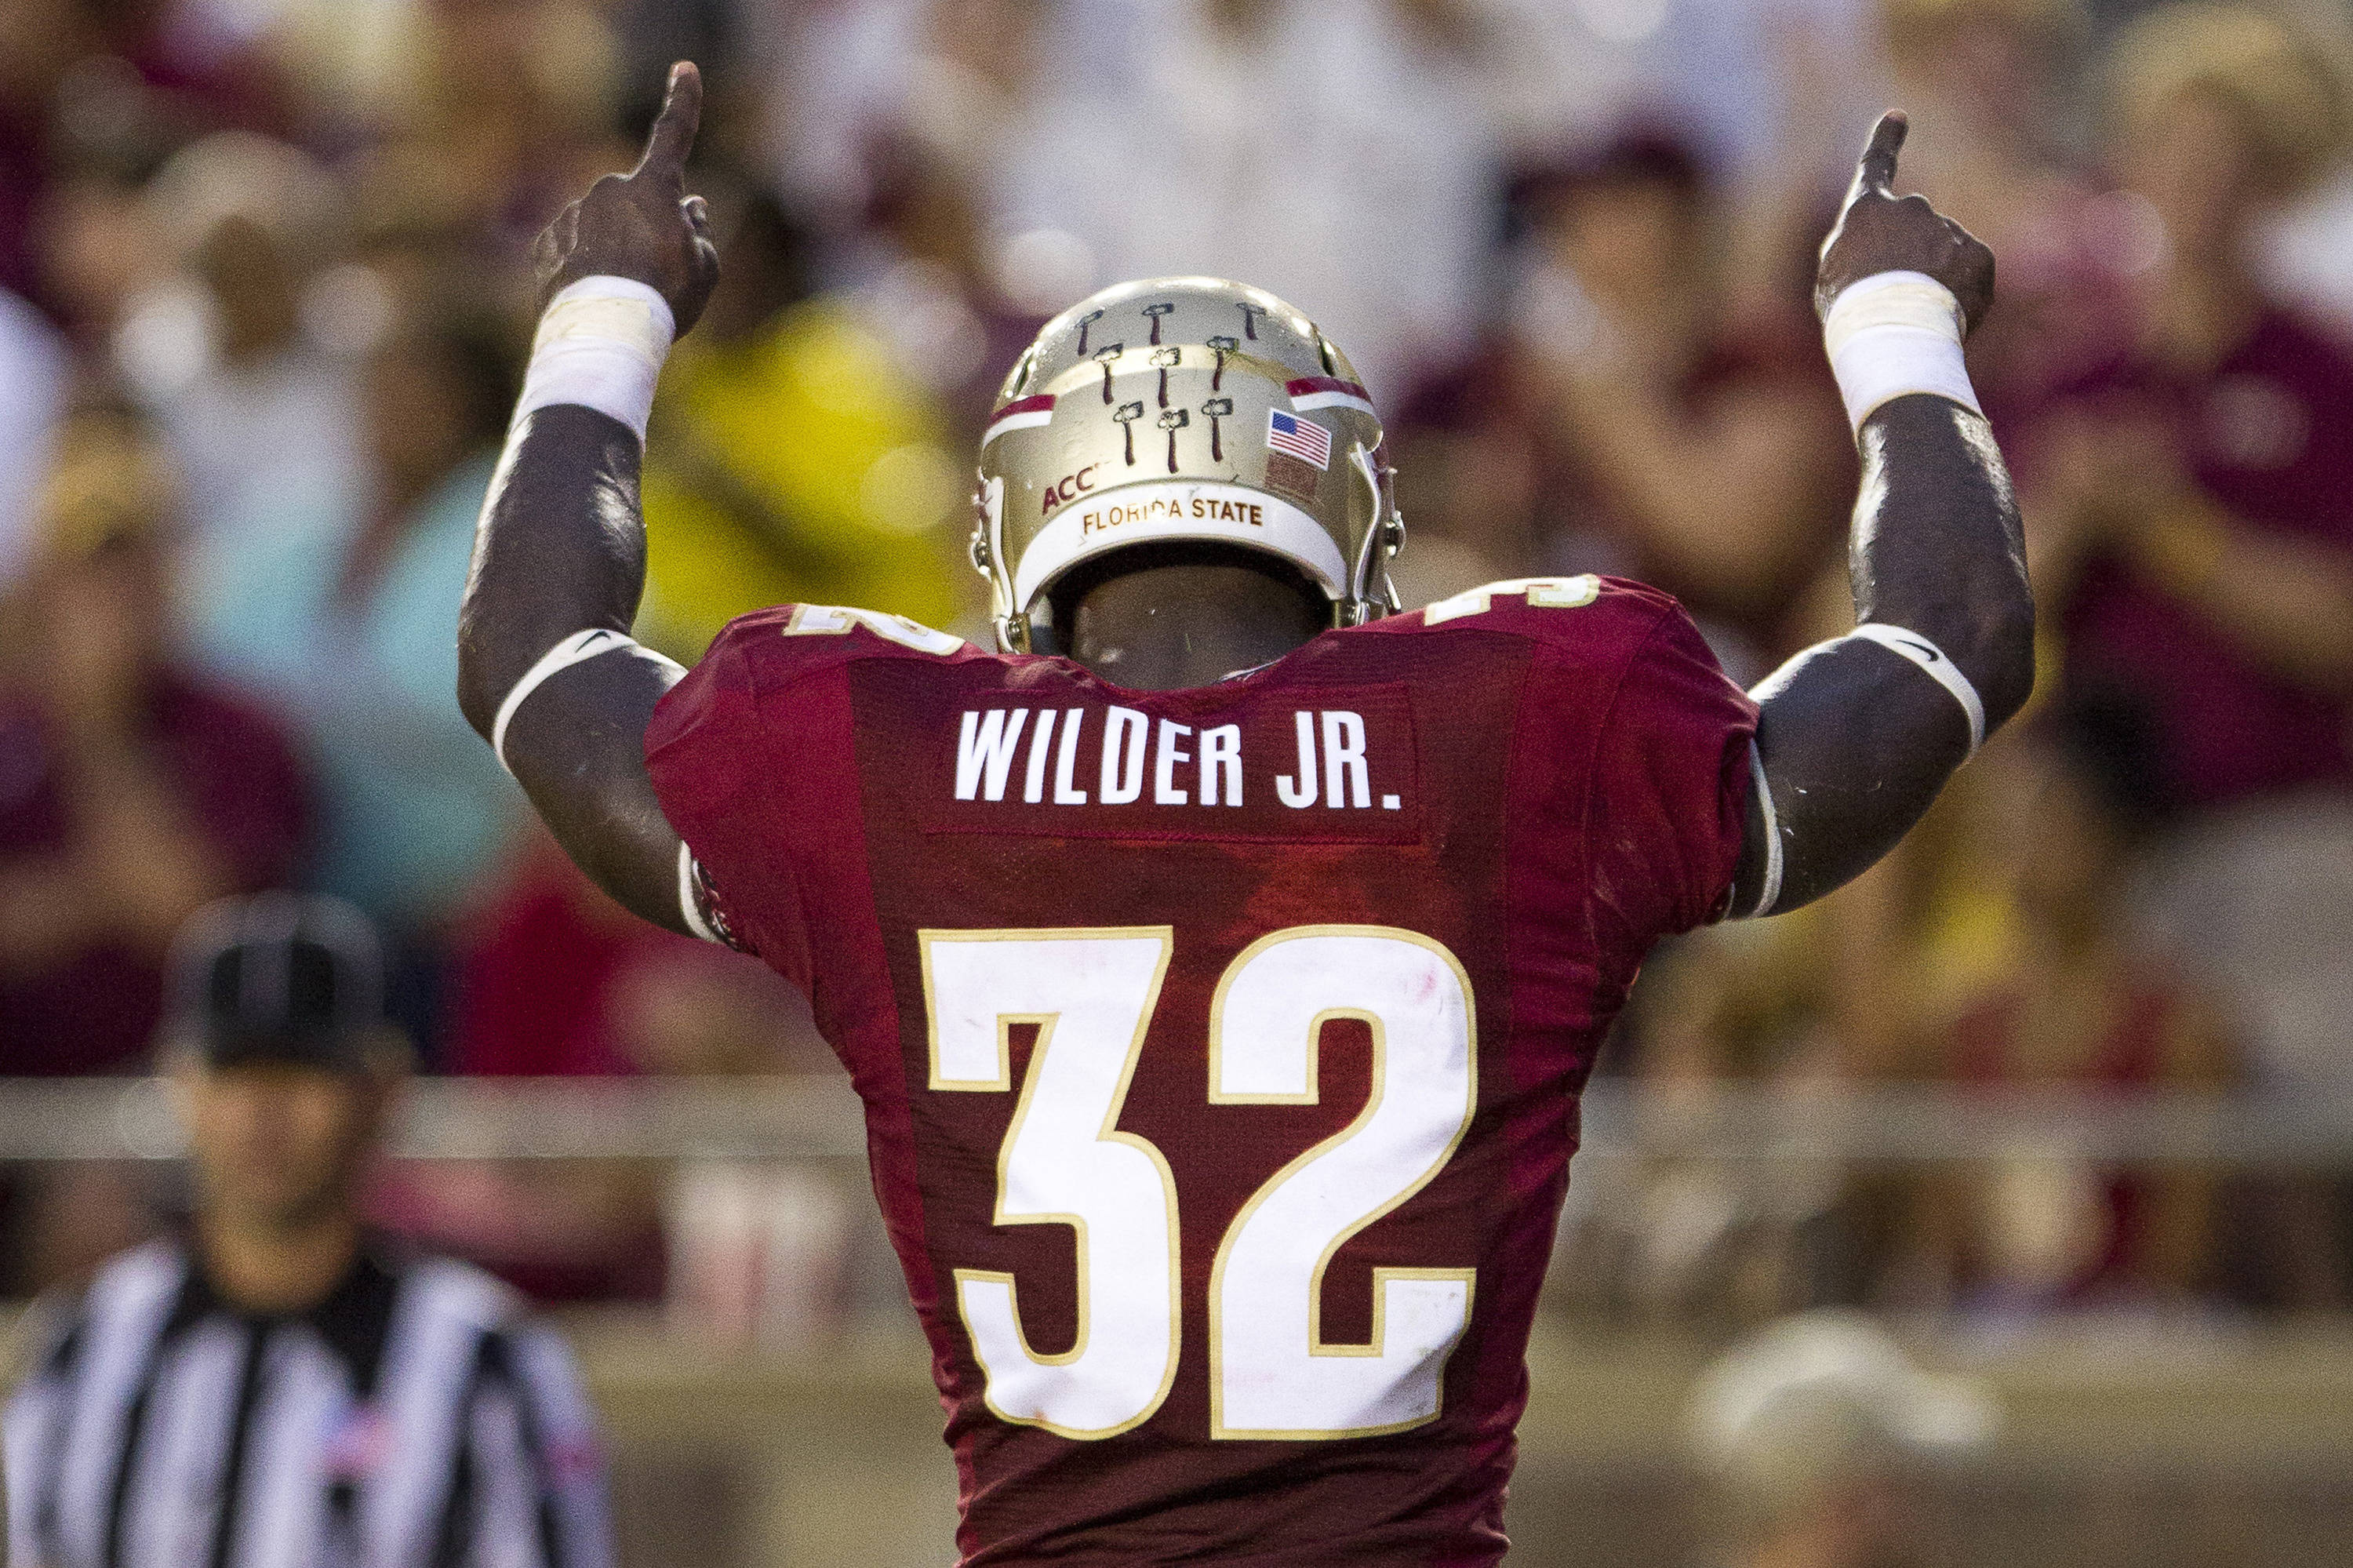 James Wilder, Jr. (32) celebrates after a touchdown during FSU Football's 54-6 win over Bethune-Cookman on September 21, 2013 in Tallahassee, Fla